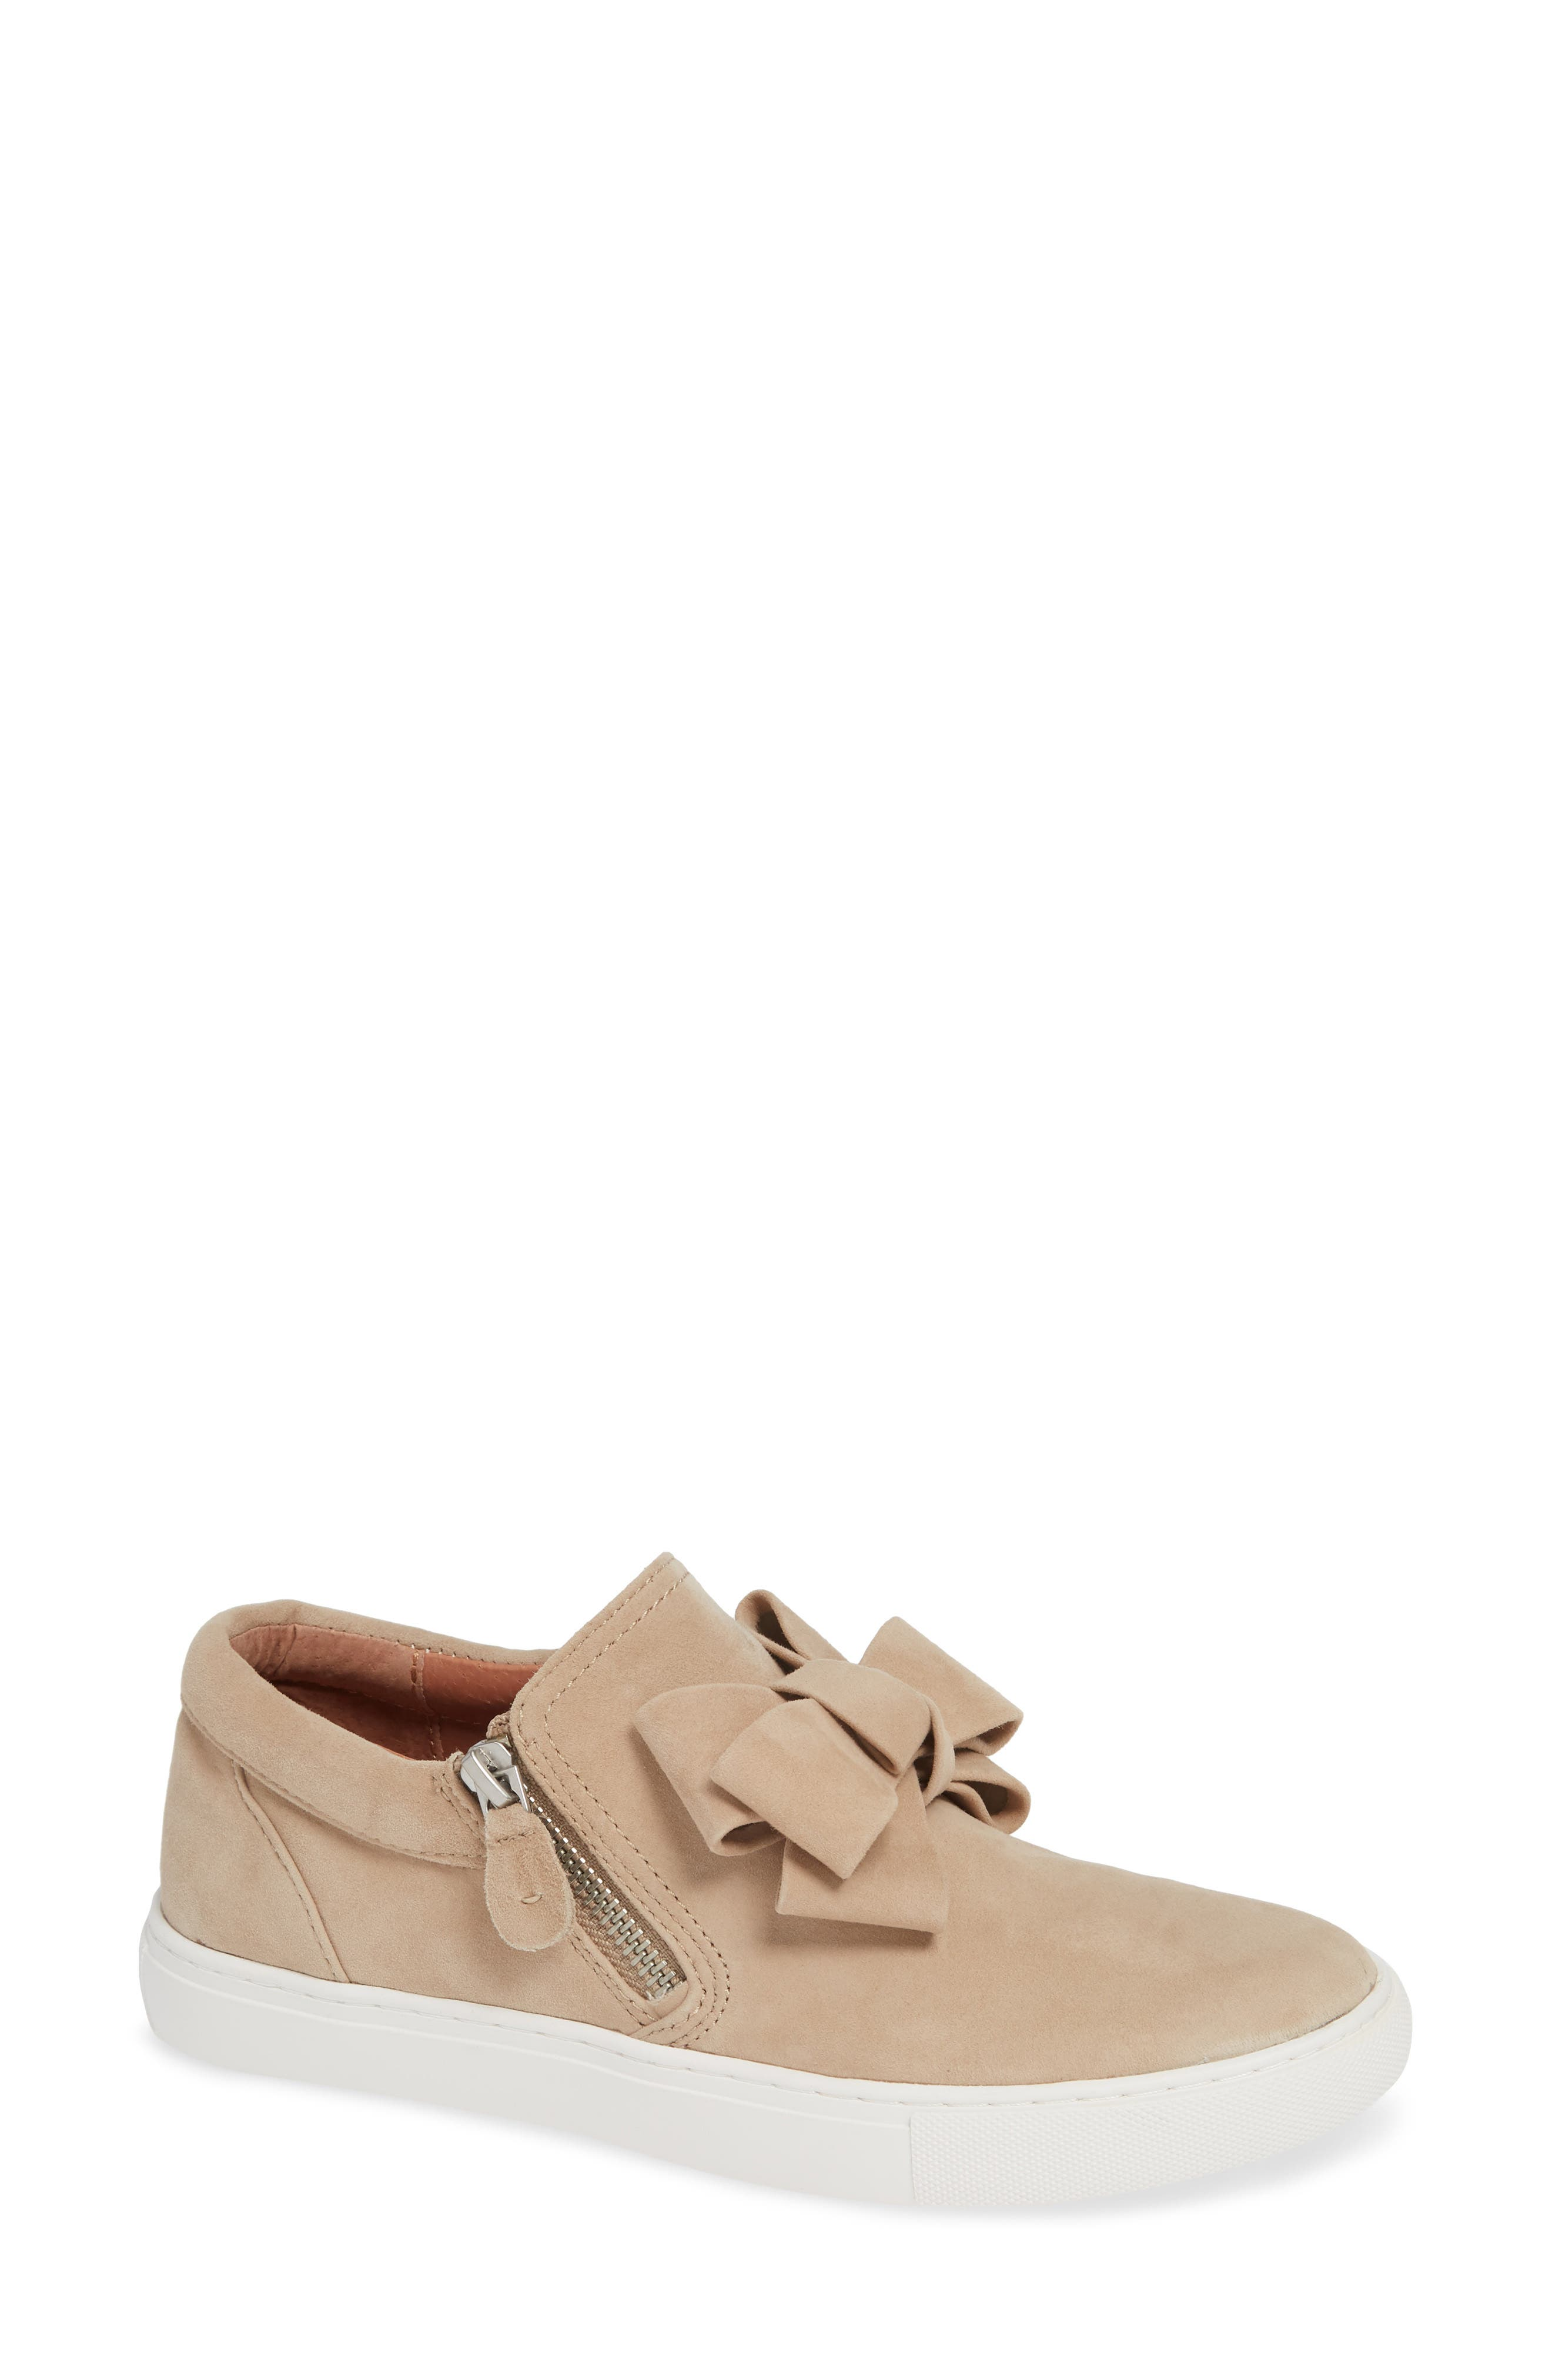 By Kenneth Cole Lowe Bow Sneaker in Cafe Suede